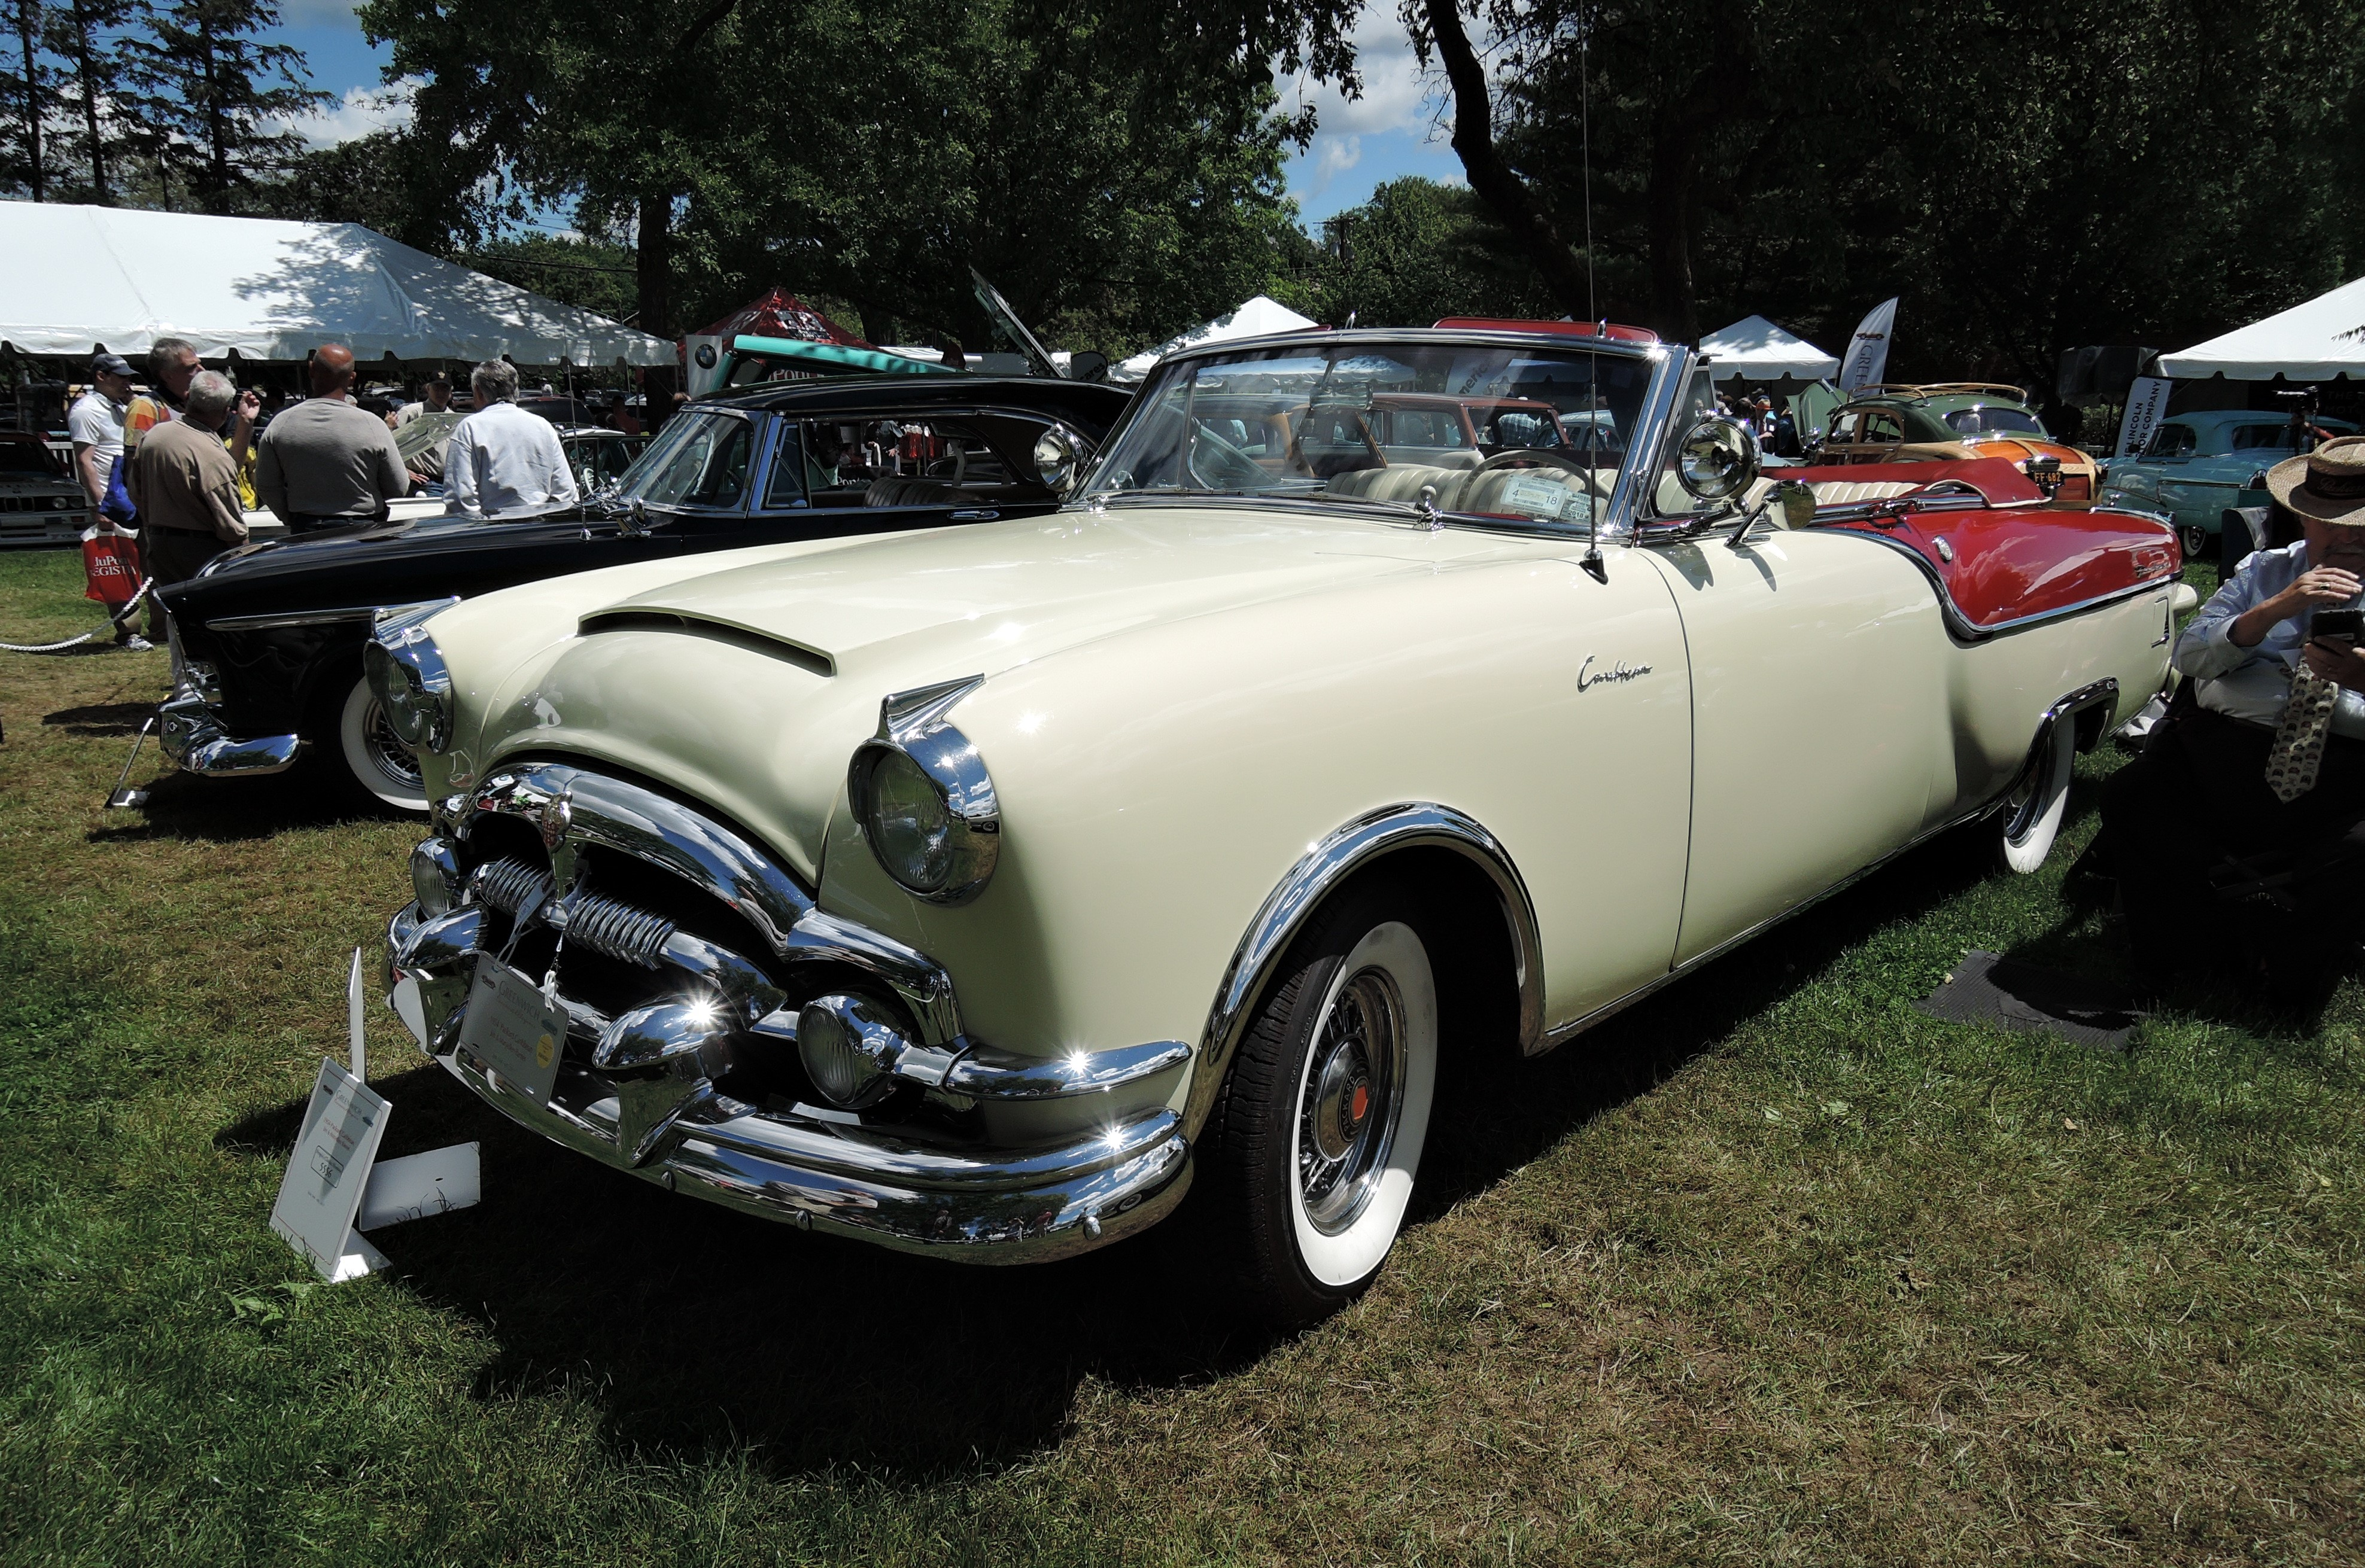 white/red 1954 Packard Caribbean - Greenwich Concours d'Elegance 2017